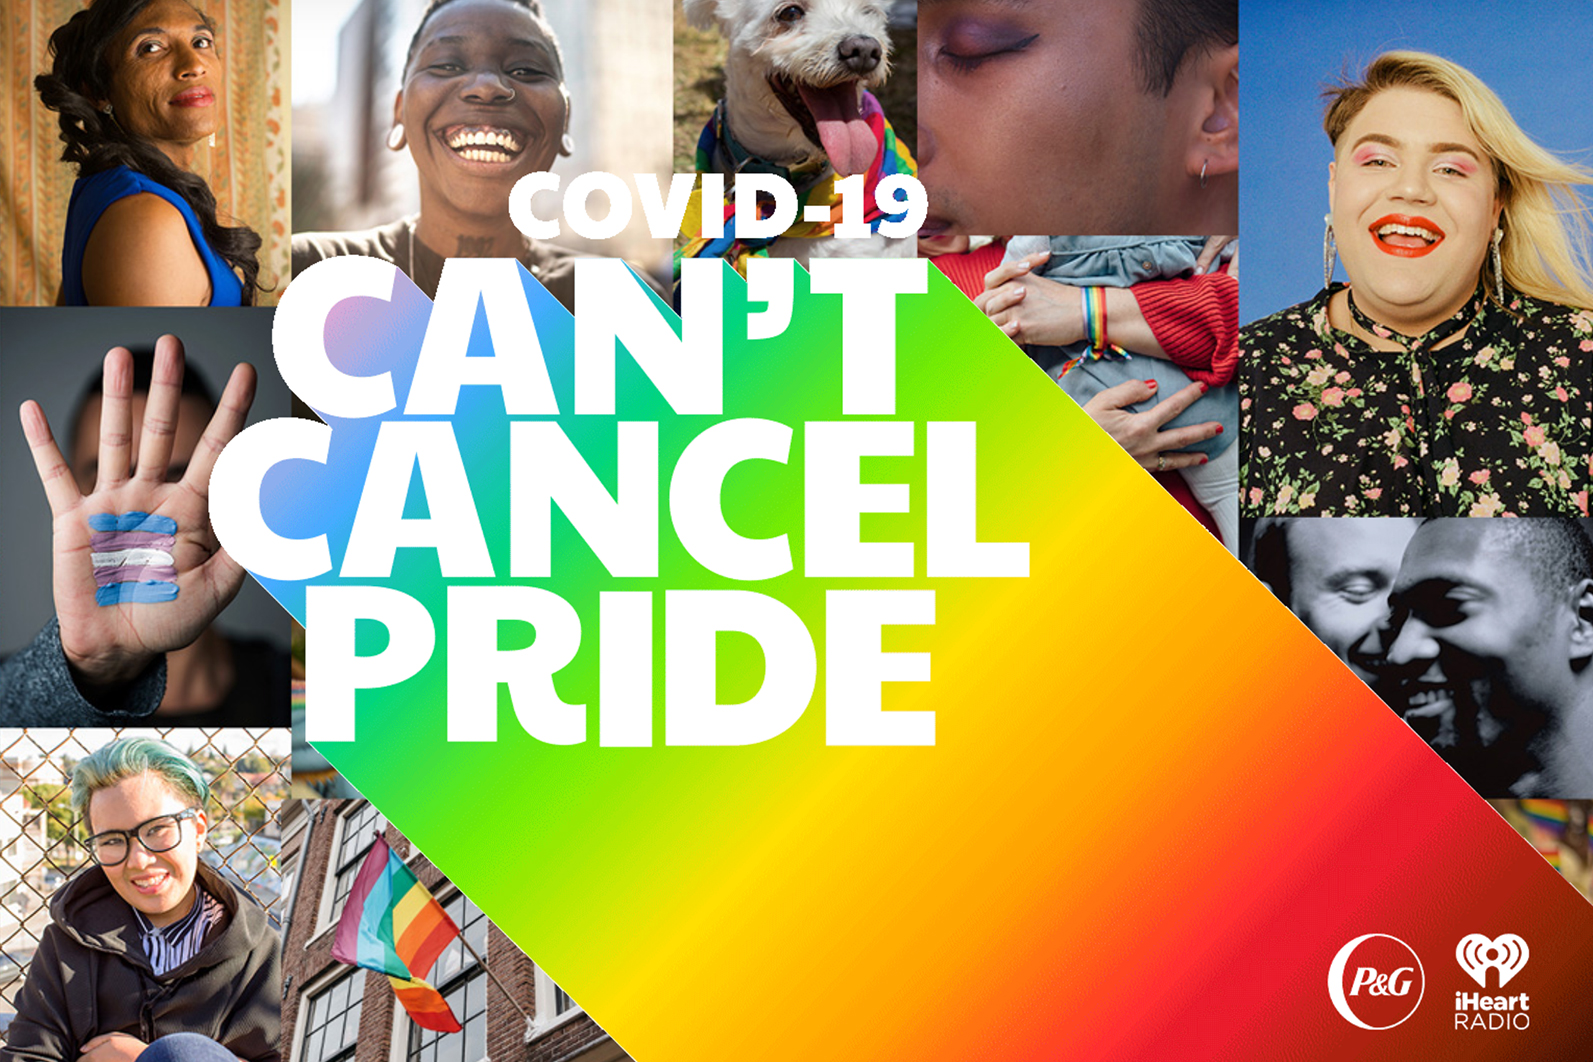 P&G and iHeartMedia sponsor 'Can't Cancel Pride' COVID-19 relief benefit starring Katy Perry, Sia and Billy Porter